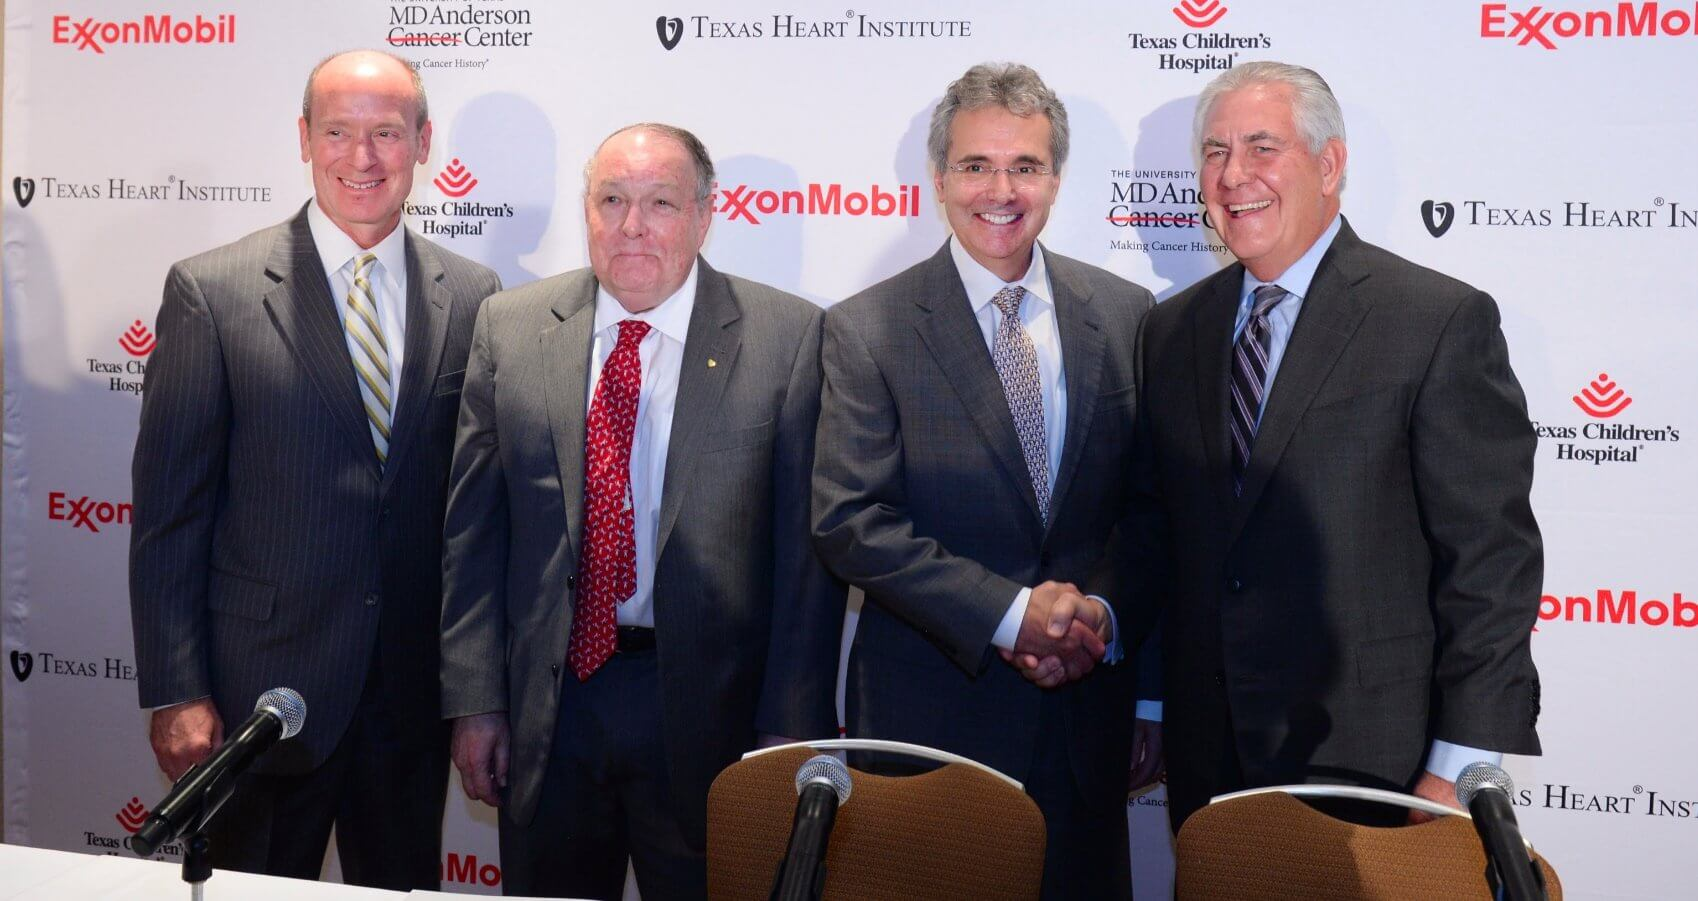 From left: Texas Children's Hospital Physician-in-Chief Mark Kline, M.D., Texas Heart Institute President James T. Willerson, M.D., MD Anderson President Ron DePinho, M.D., and ExxonMobil Chairman and CEO Rex W. Tillerson.